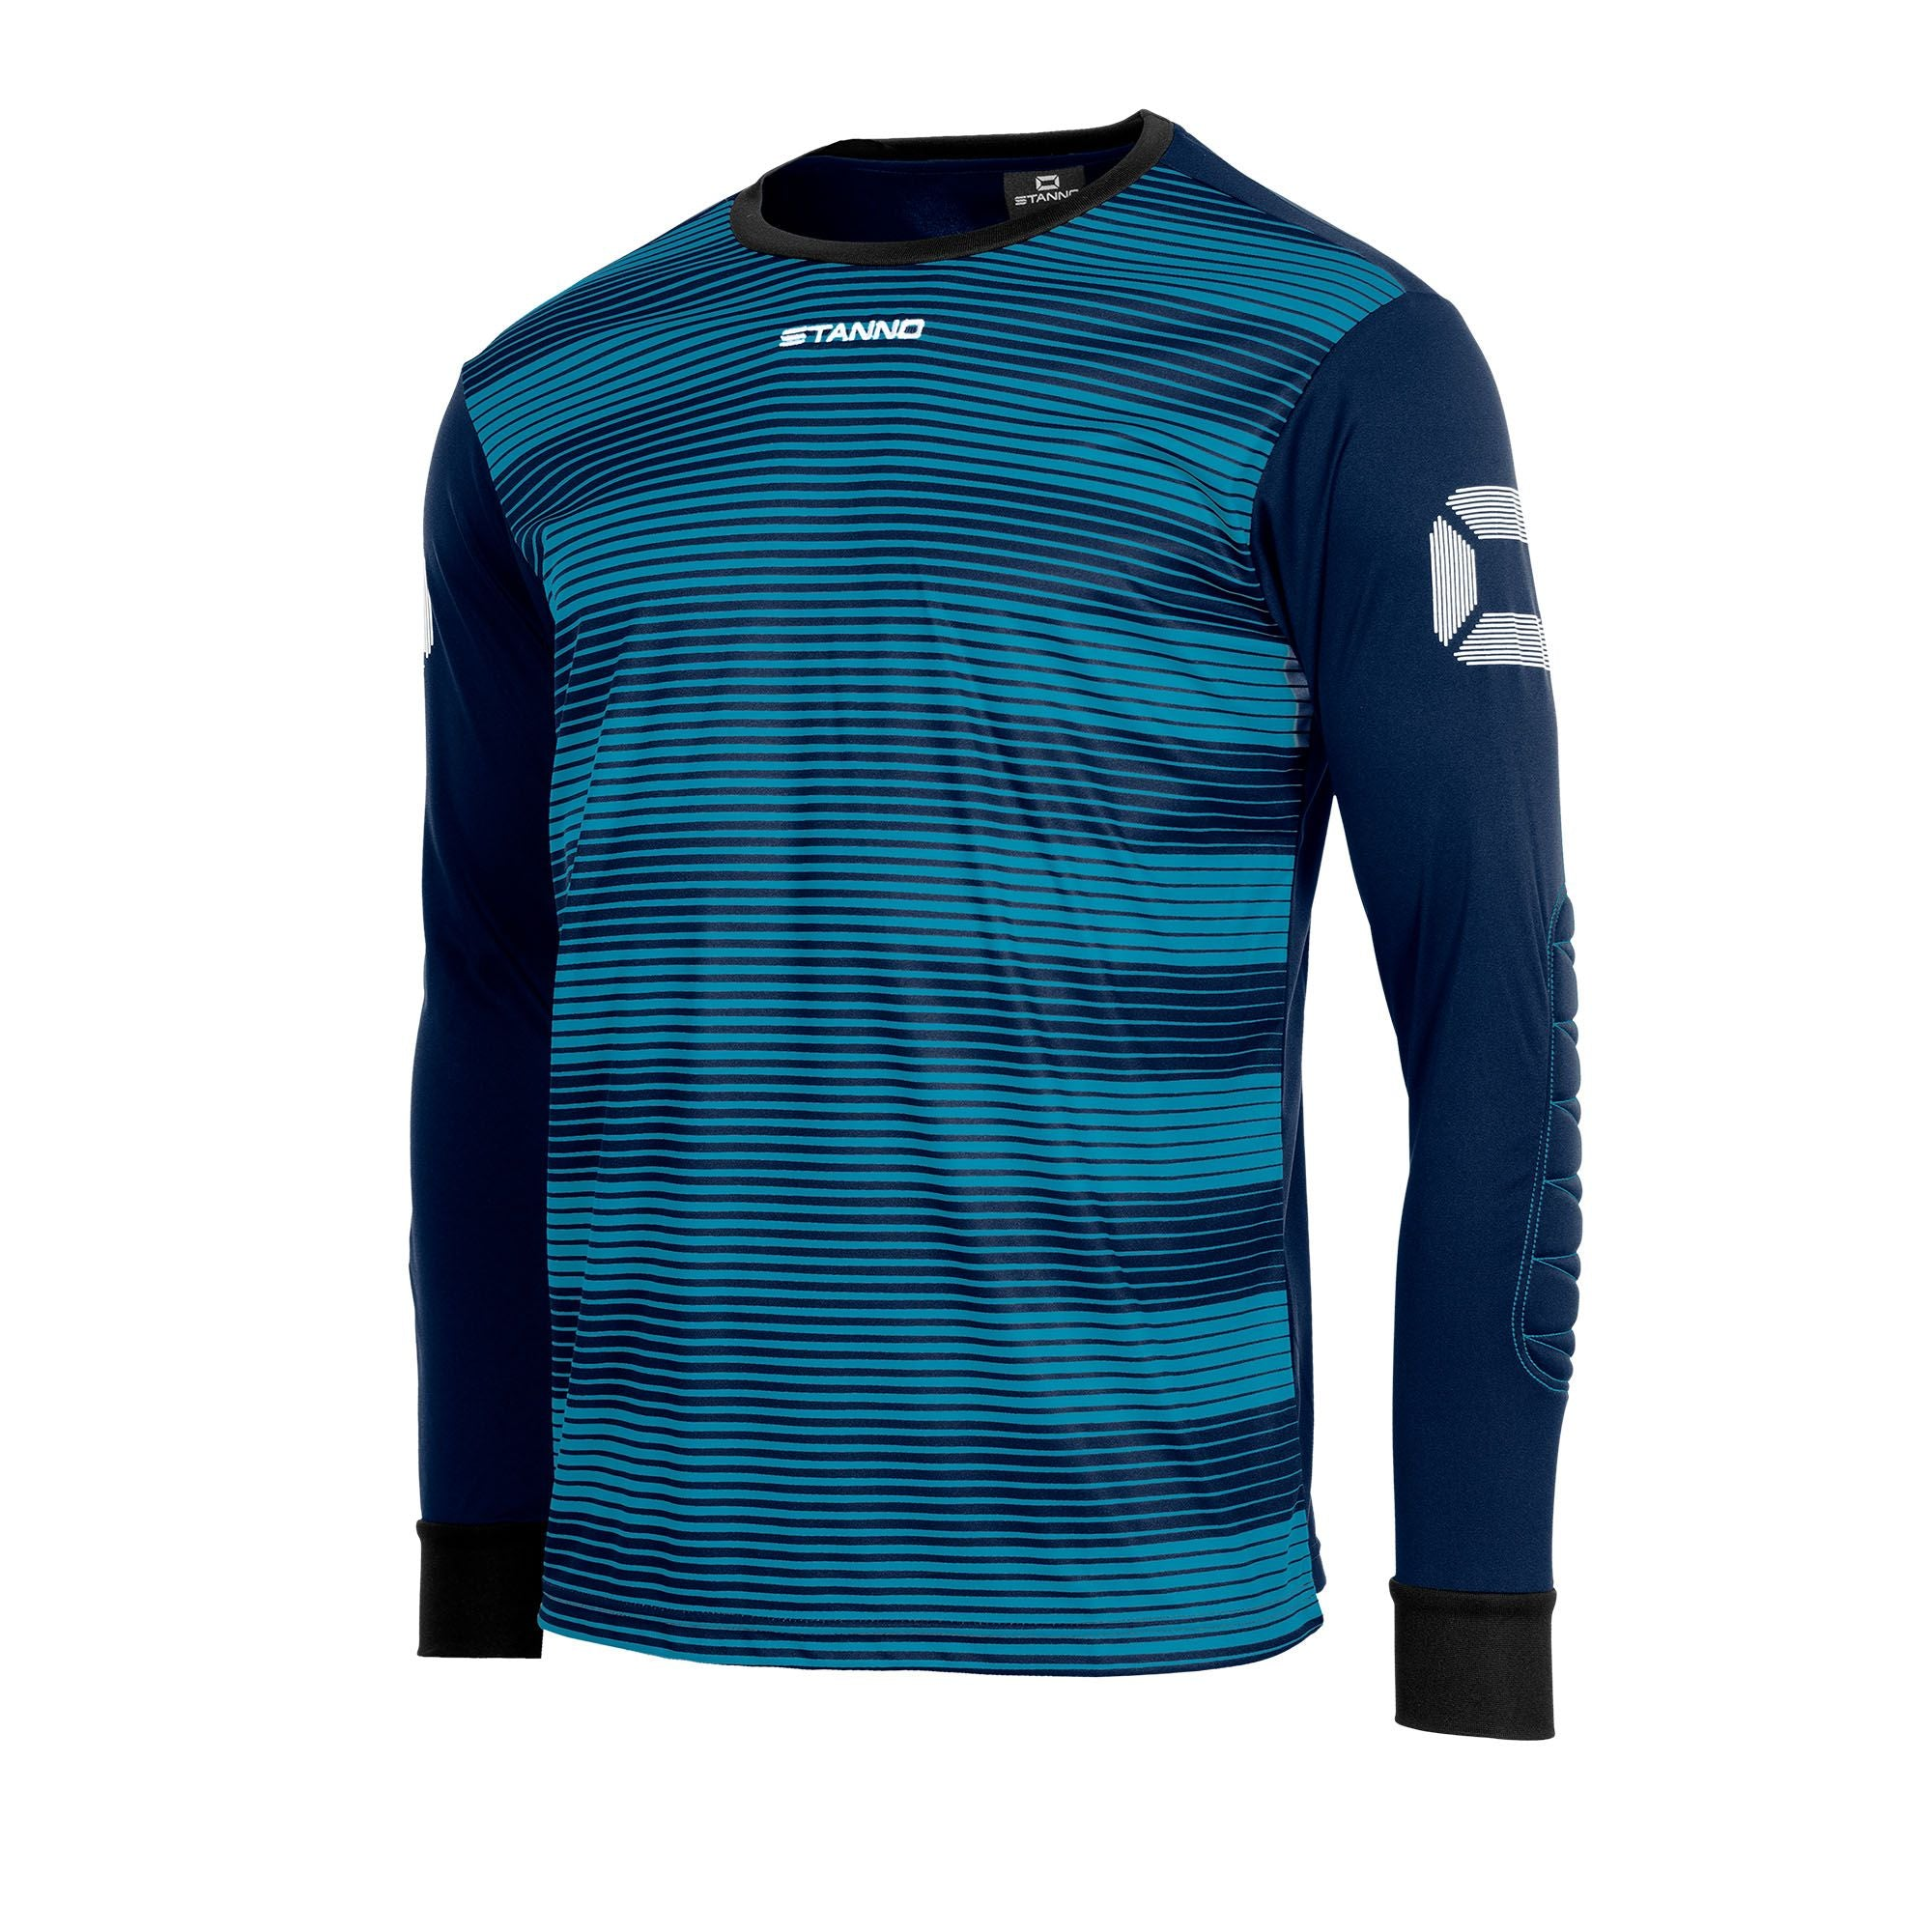 Stanno Tivoli Goalkeeper Shirt - Navy/Black